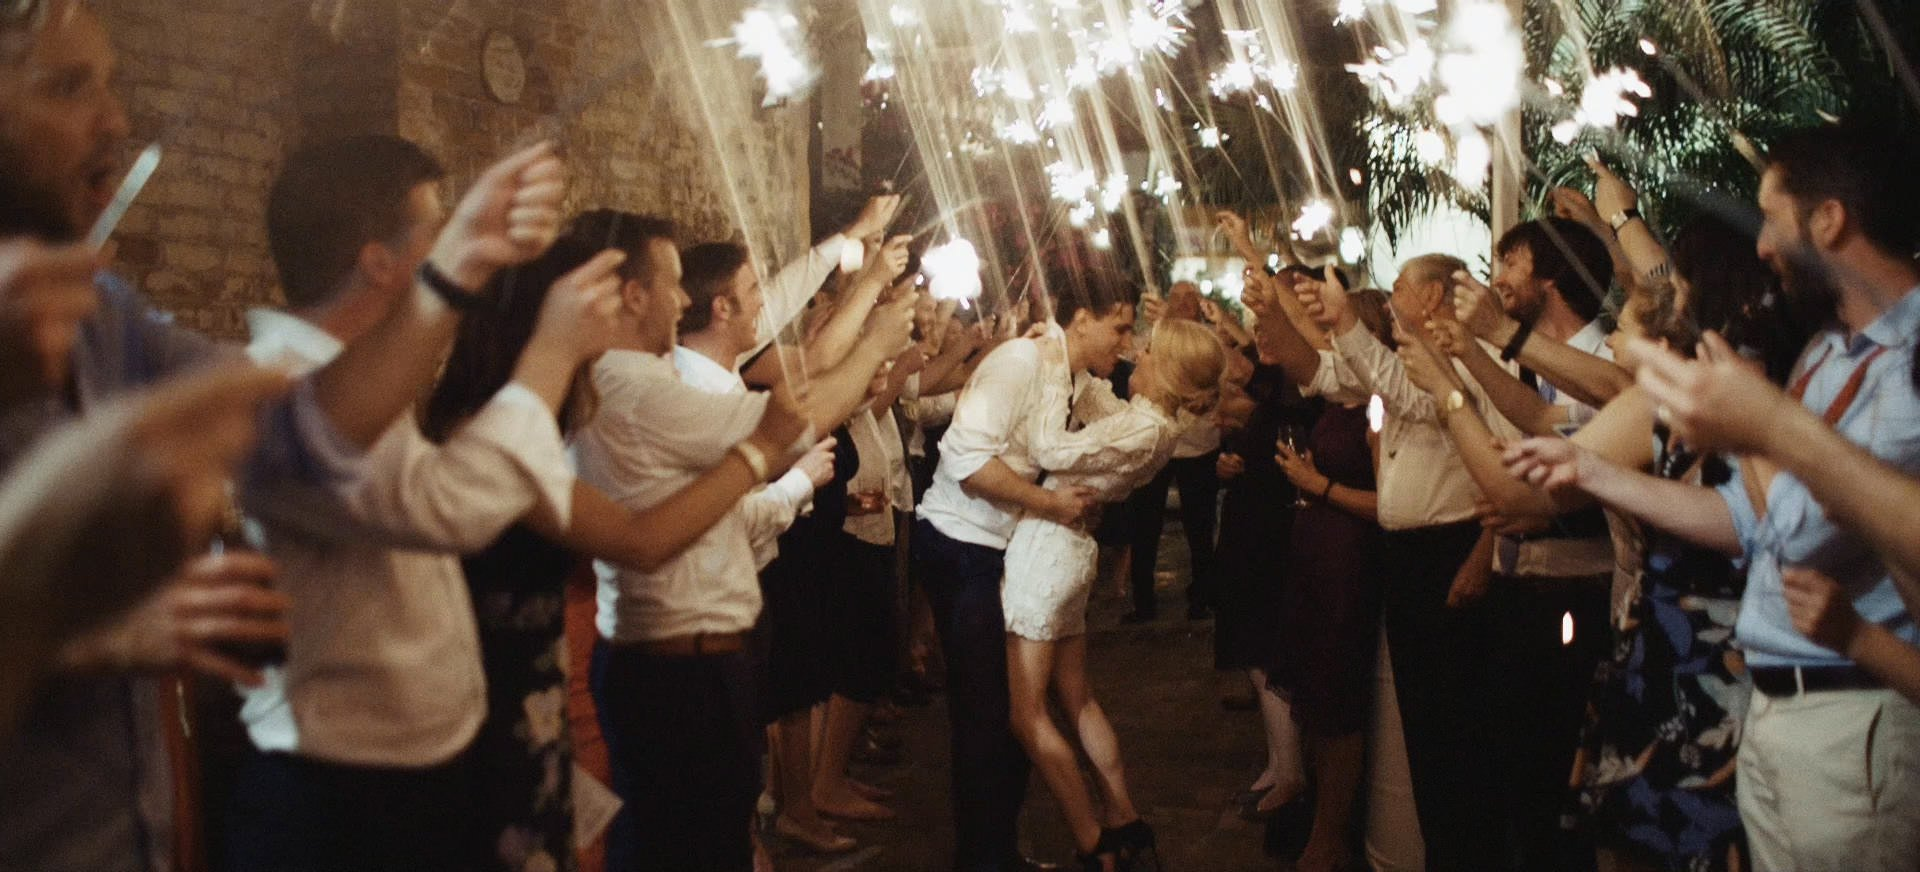 Race & Religious New Orleans Wedding / Super 8mm Film